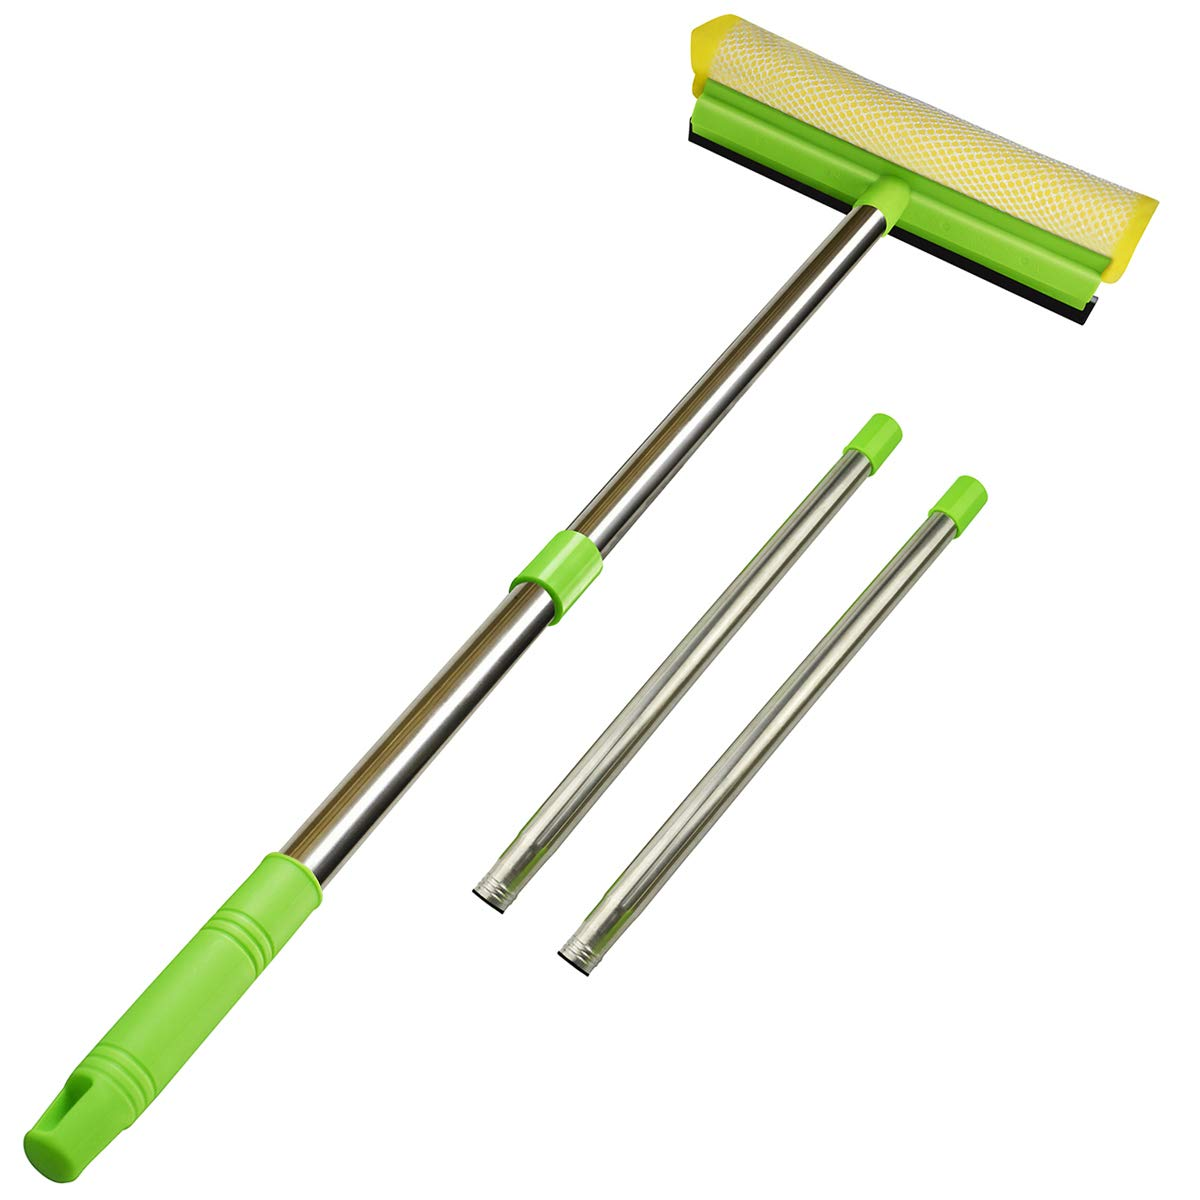 """ITTAHO Multi-Use Window Squeegee 2 in 1 Sponge Squeegee Window Cleaner with Long Extension Pole Car Windshield Window Cleaning Tool with 58"""" Handle for Auto Gas Station Outdoor High Window Cleaning"""